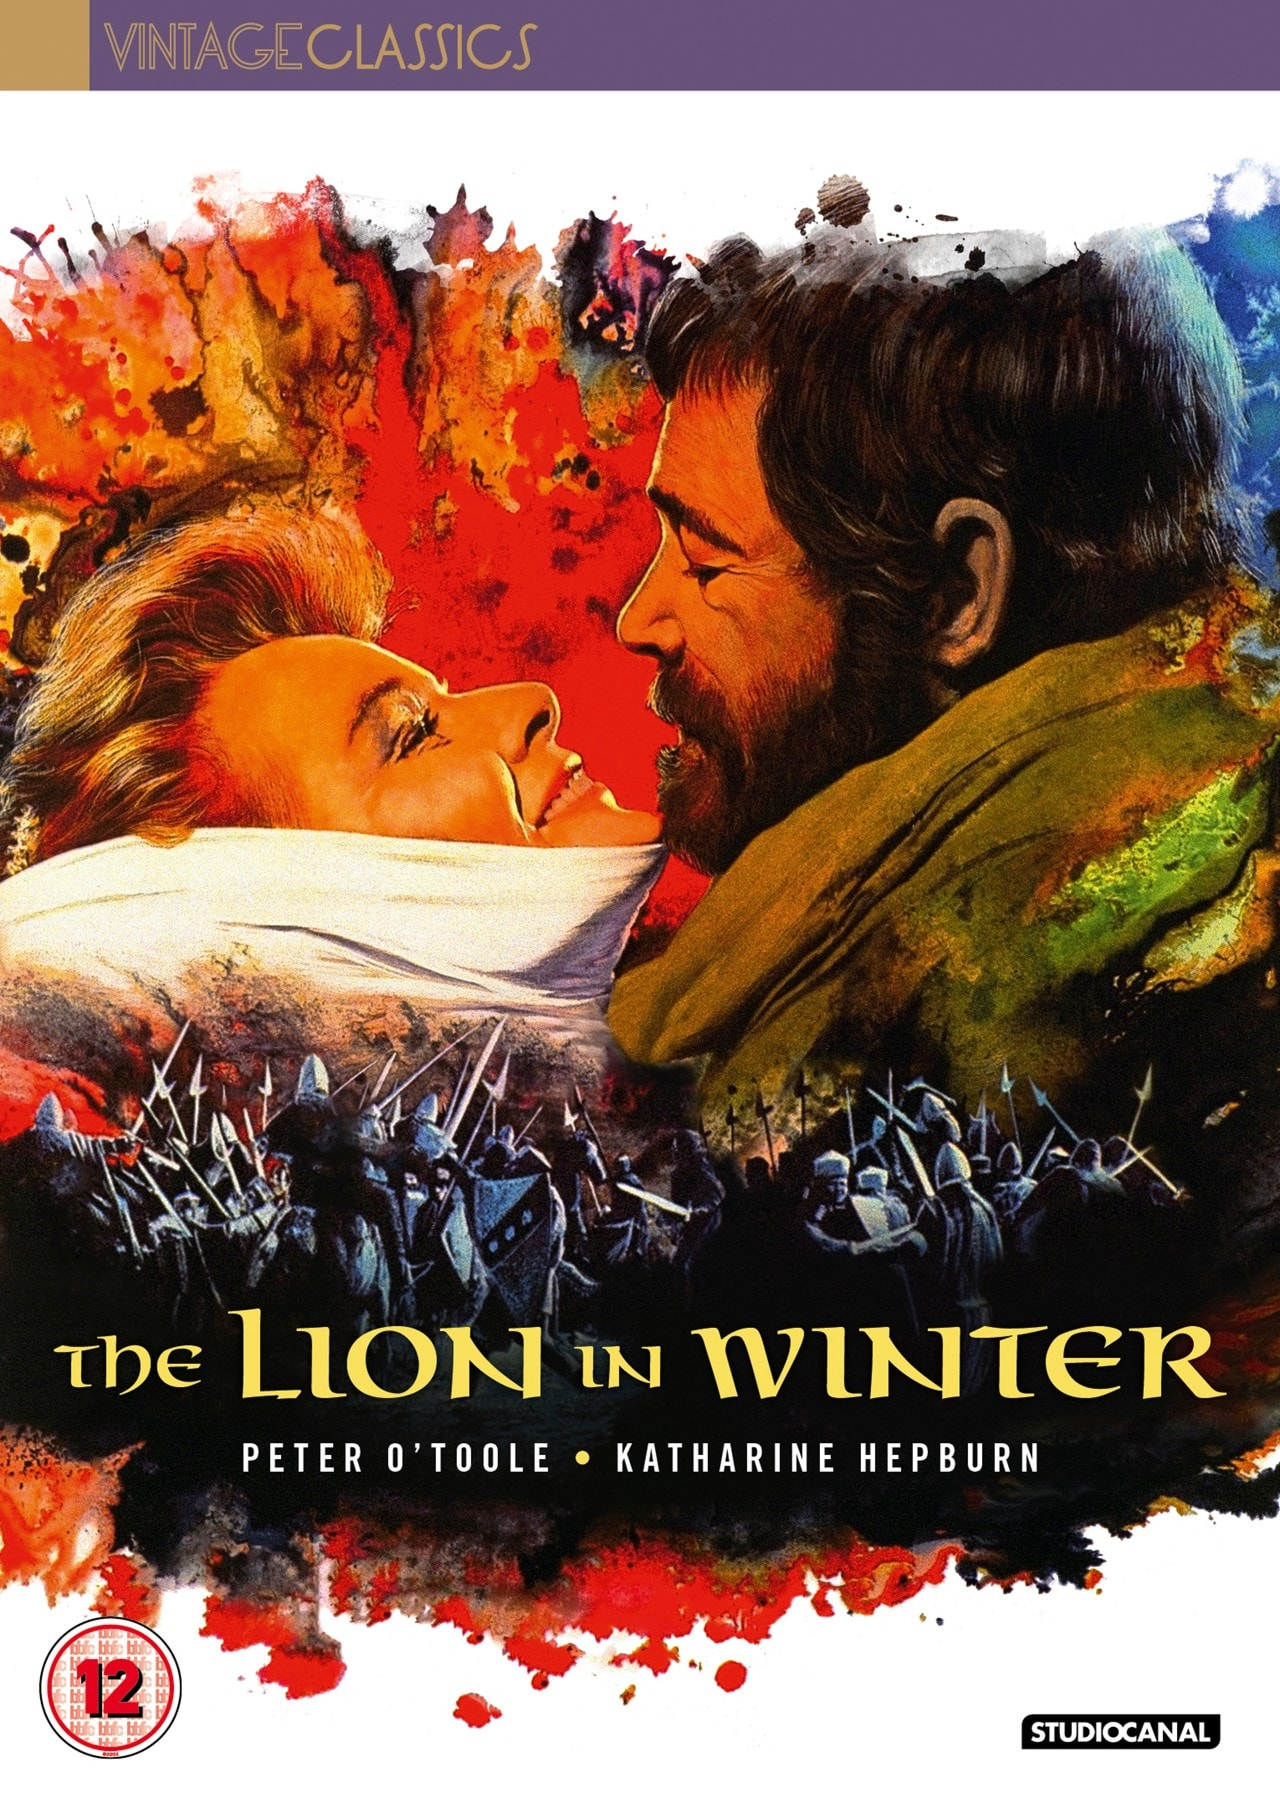 The Lion in Winter - 1